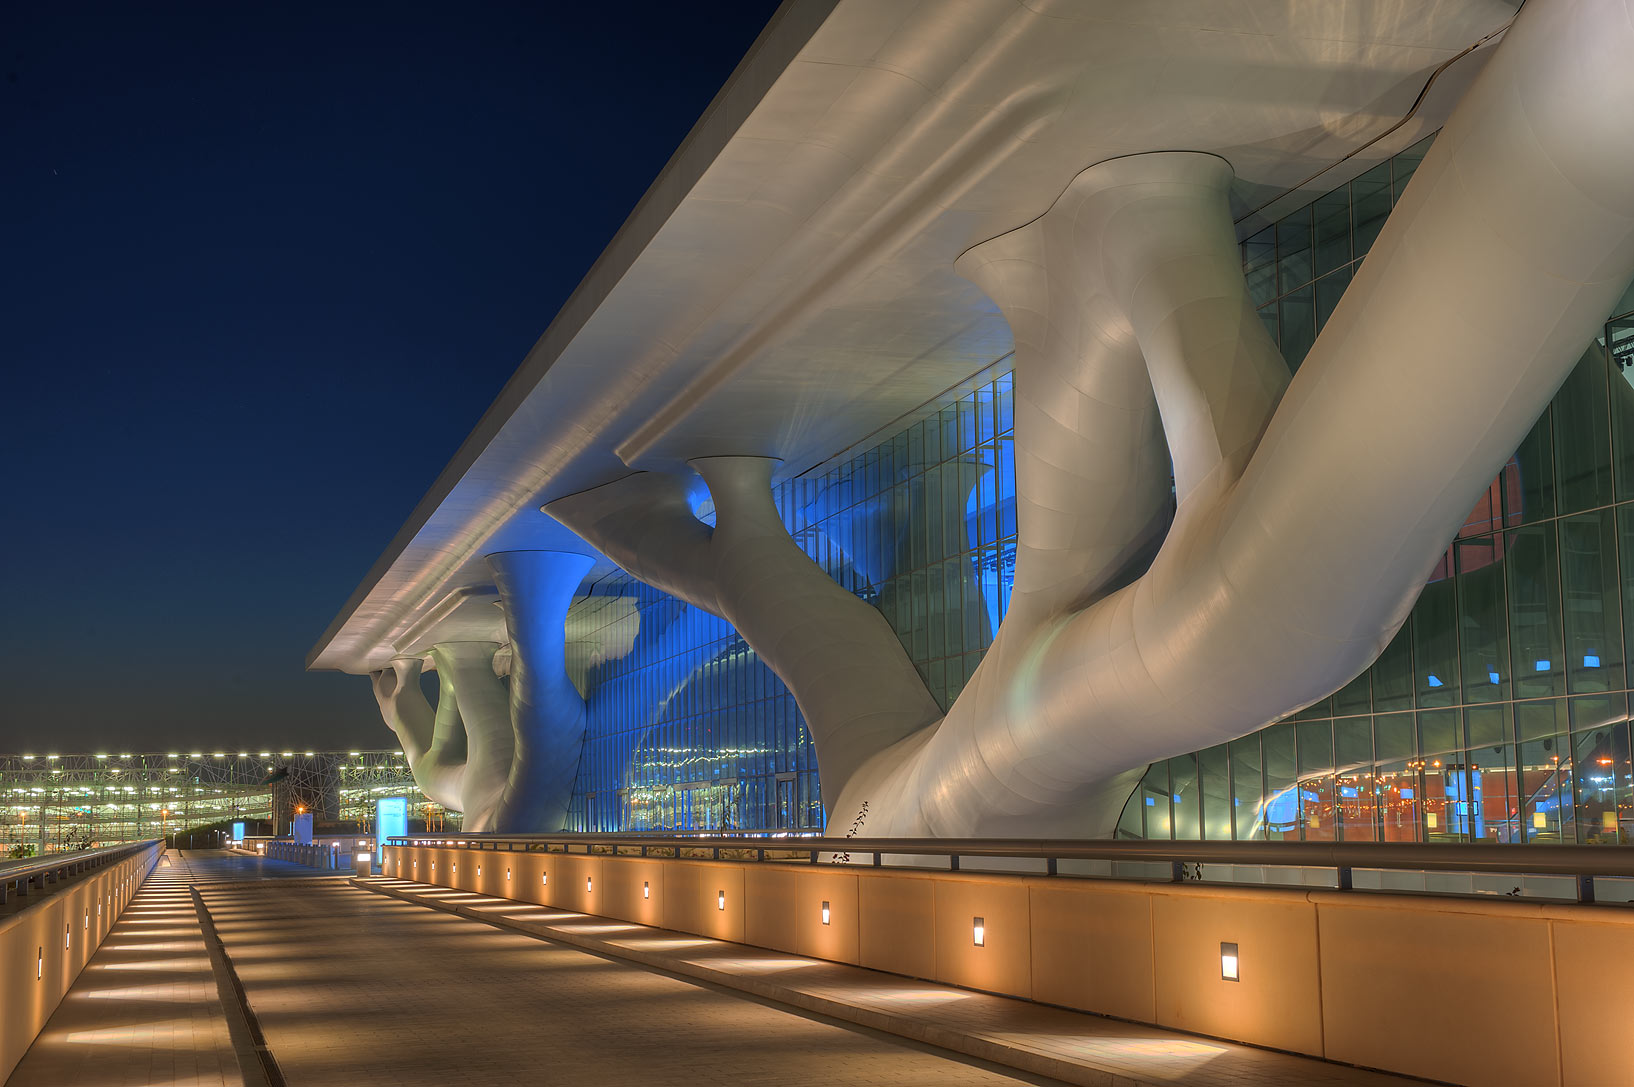 Entrance of National Convention Centre (QNCC...roof, near Dukhan Highway. Doha, Qatar